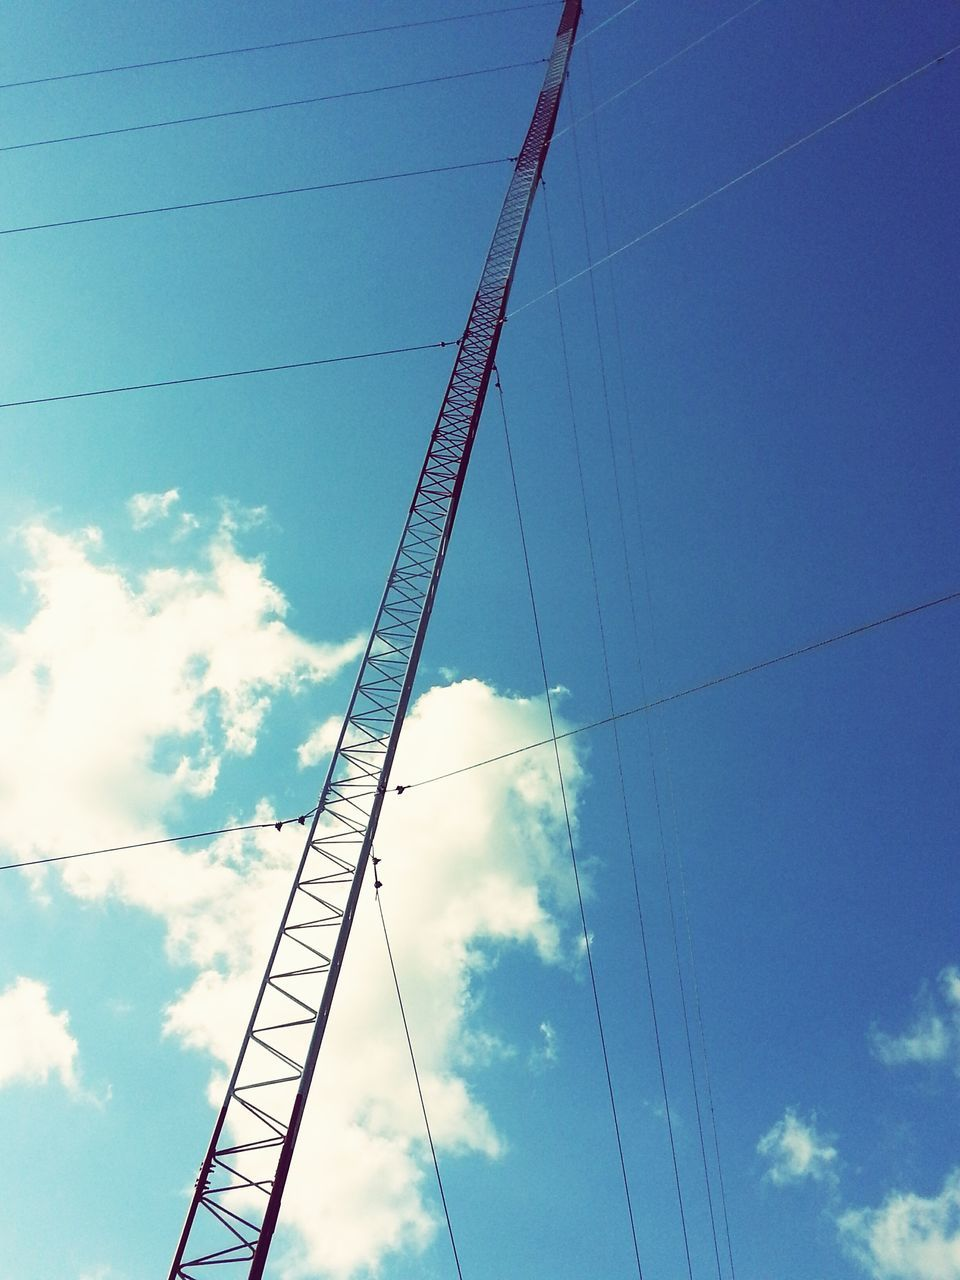 cable, low angle view, sky, power line, blue, power supply, connection, no people, day, electricity, outdoors, electricity pylon, technology, telephone line, nature